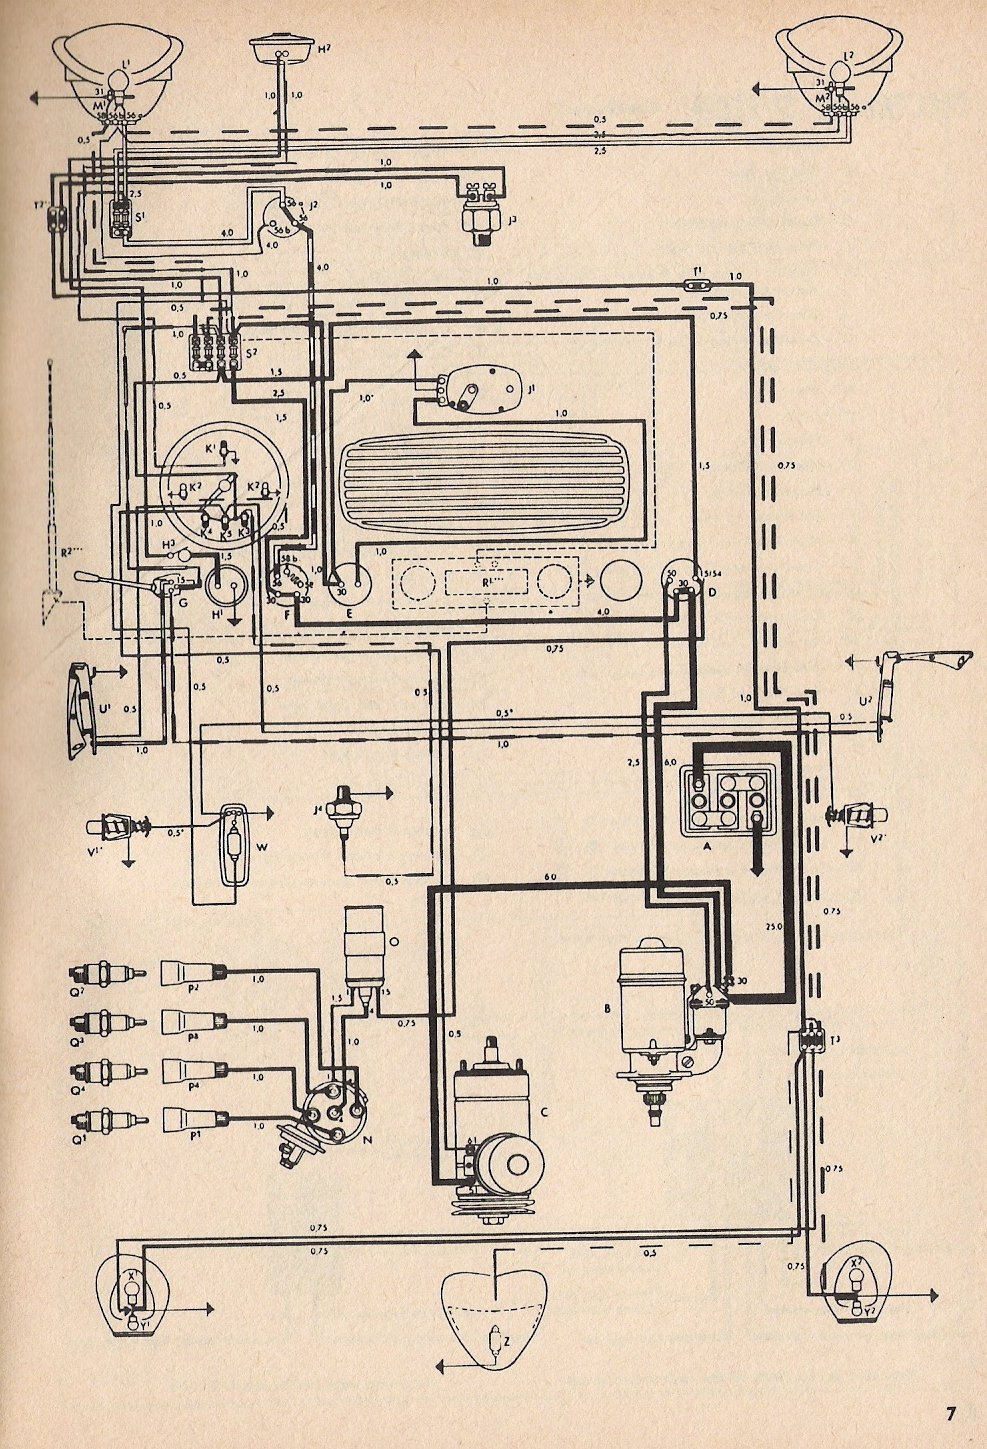 volkswagen beetle and super wiring diagram pictures wire center \u2022 69 vw bug exhaust thesamba com type 1 wiring diagrams rh thesamba com 1973 super beetle wiring diagram 1973 vw